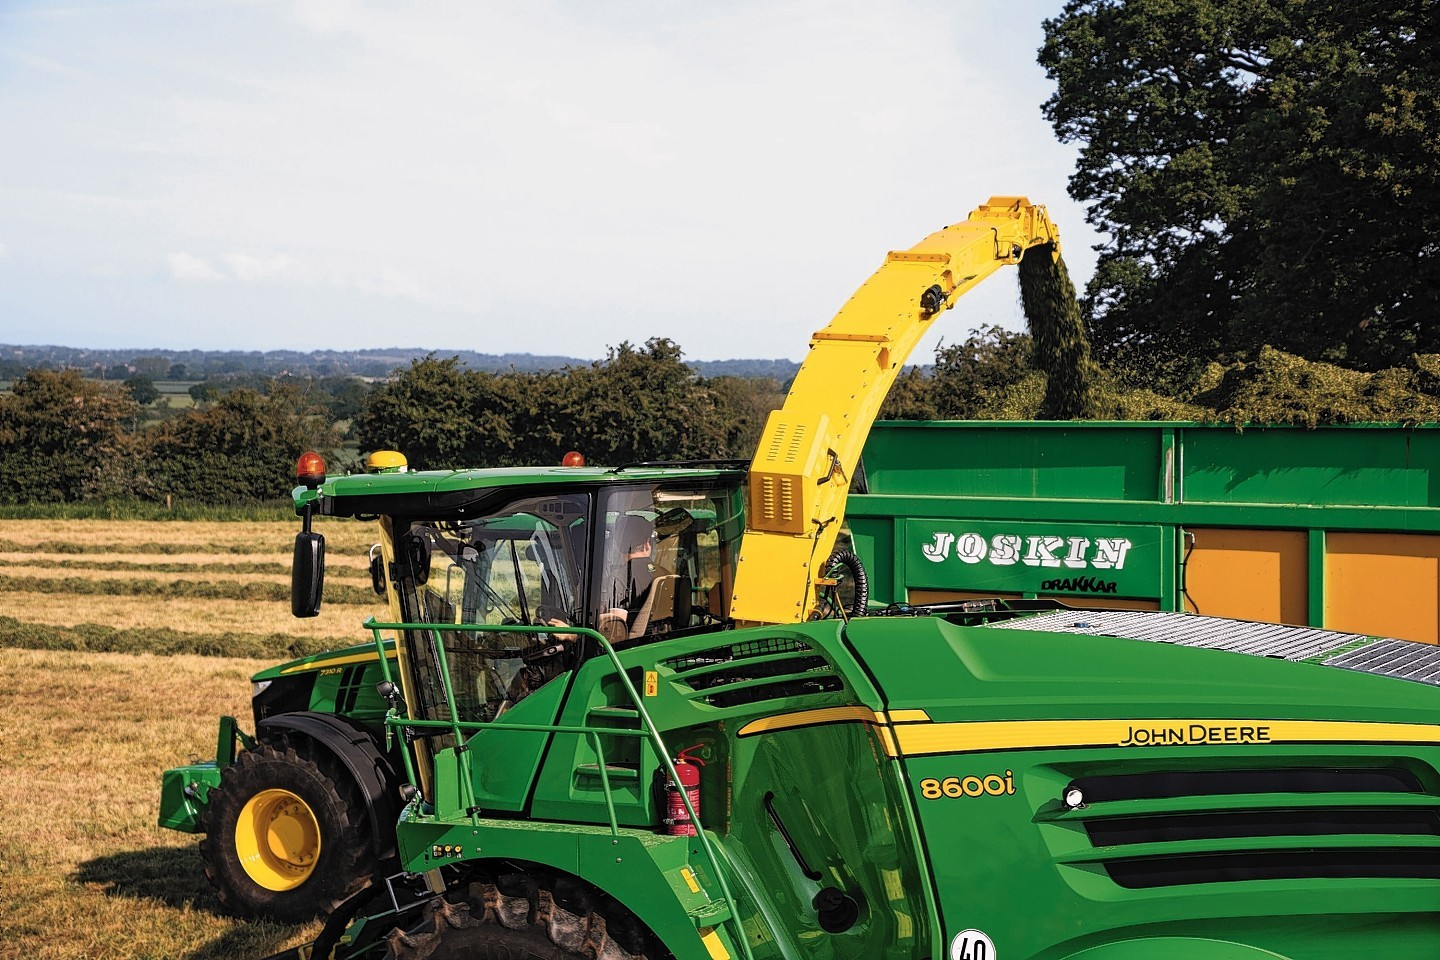 The new John Deere 8600i self propelled forage harvester